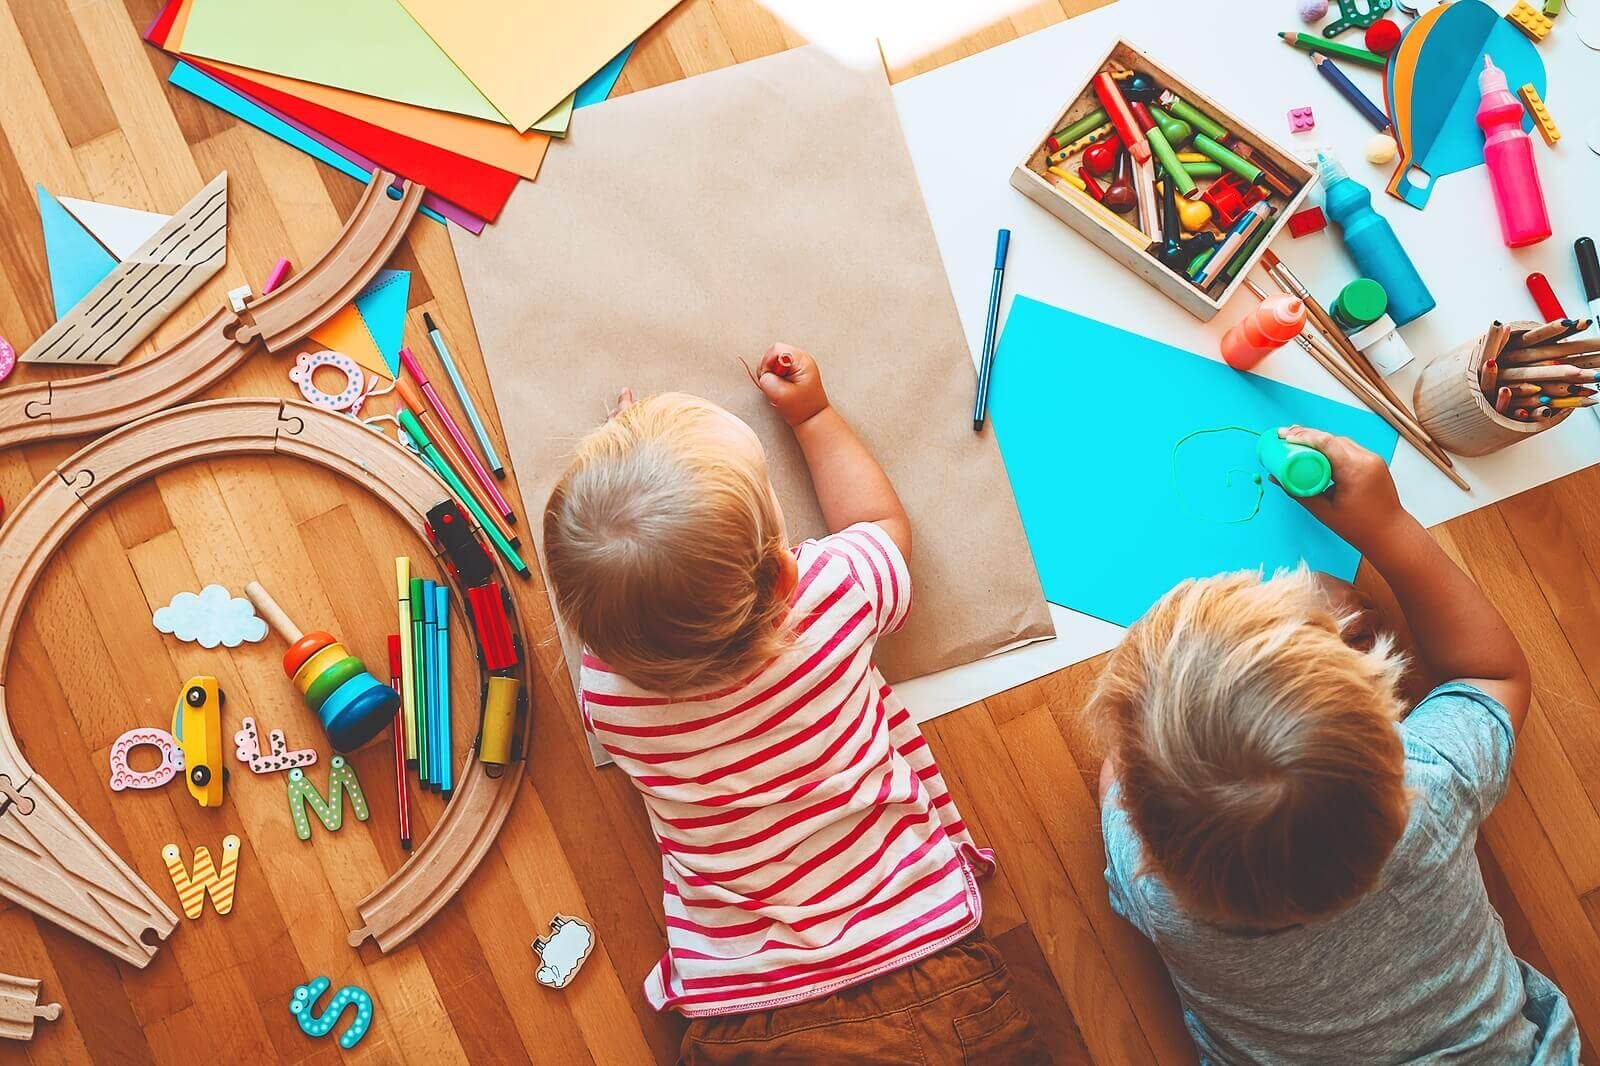 5 Tips to Promote Creativity in Children